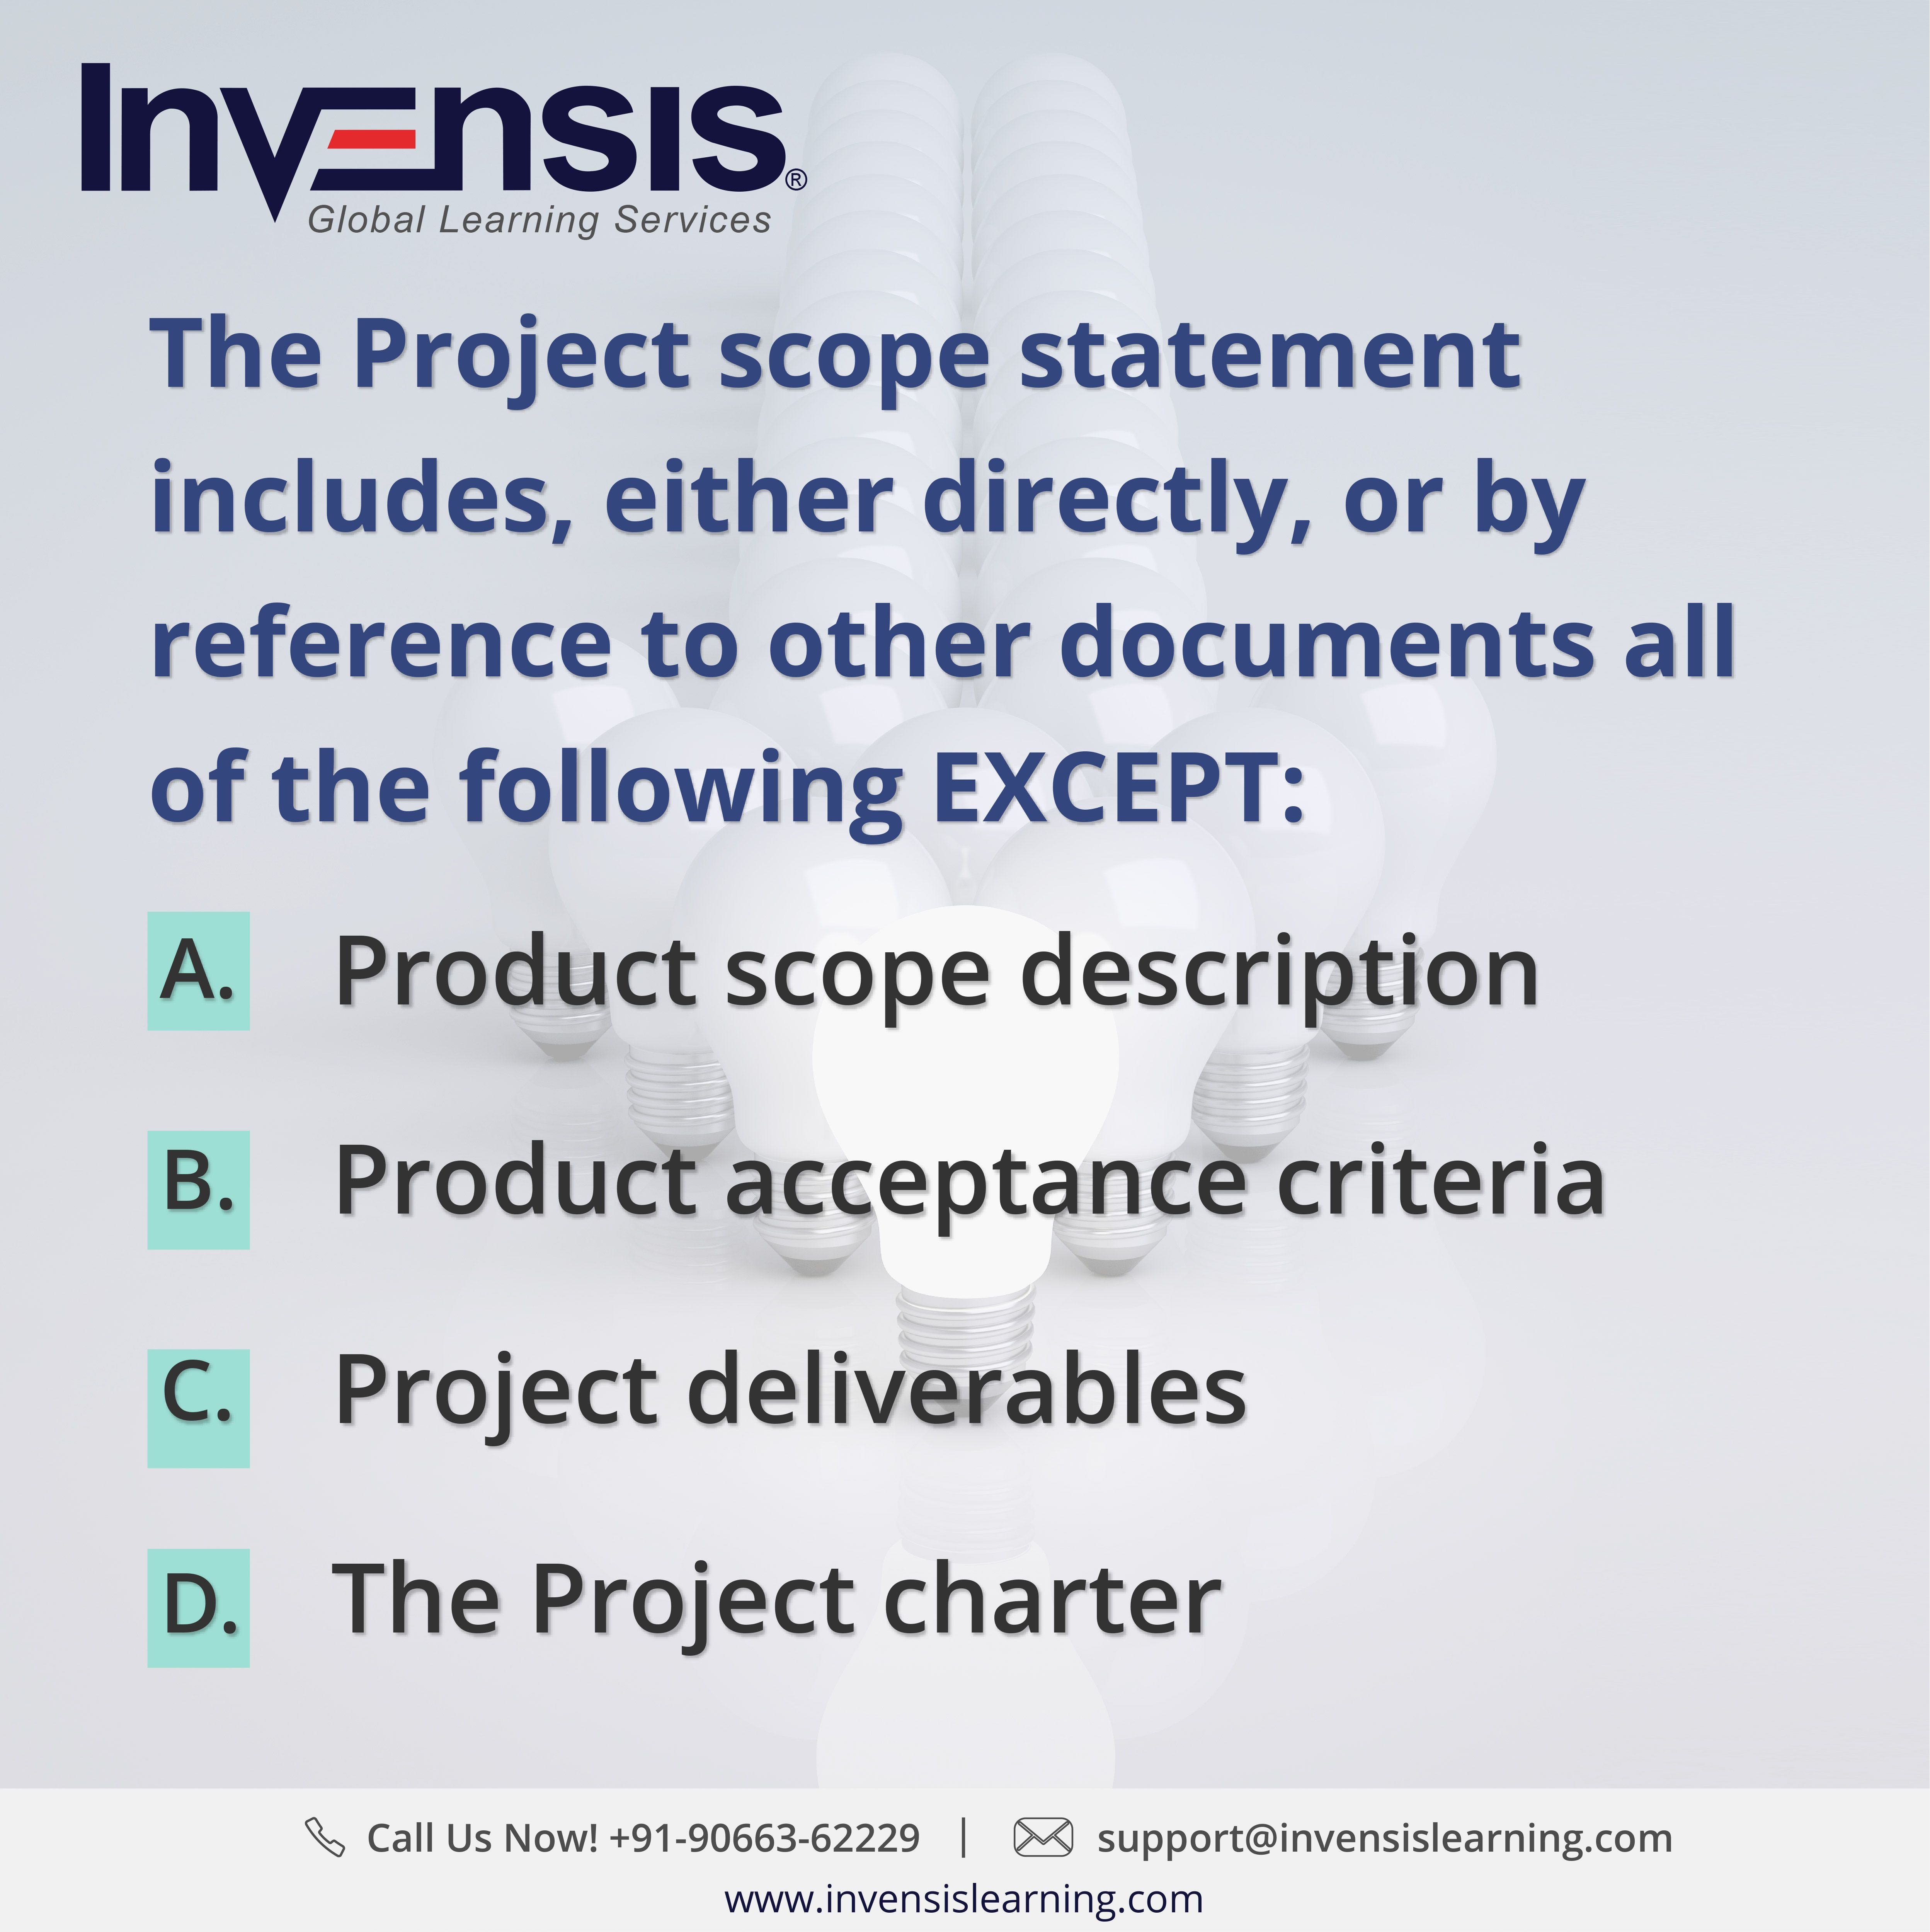 The Project scope statement includes, either directly, or by reference to other documents all of the following EXCEPT: Looking to build your CAPM knowledge? Please visit www.invensislearning.com for more information on our upcoming CAPM courses  and around the world. Get 10% discount on an upcoming training program within 3 months of attending our course. #CAPMExam #CAPM #CAPMTraining #CAPMQuestion #CAPMCertification